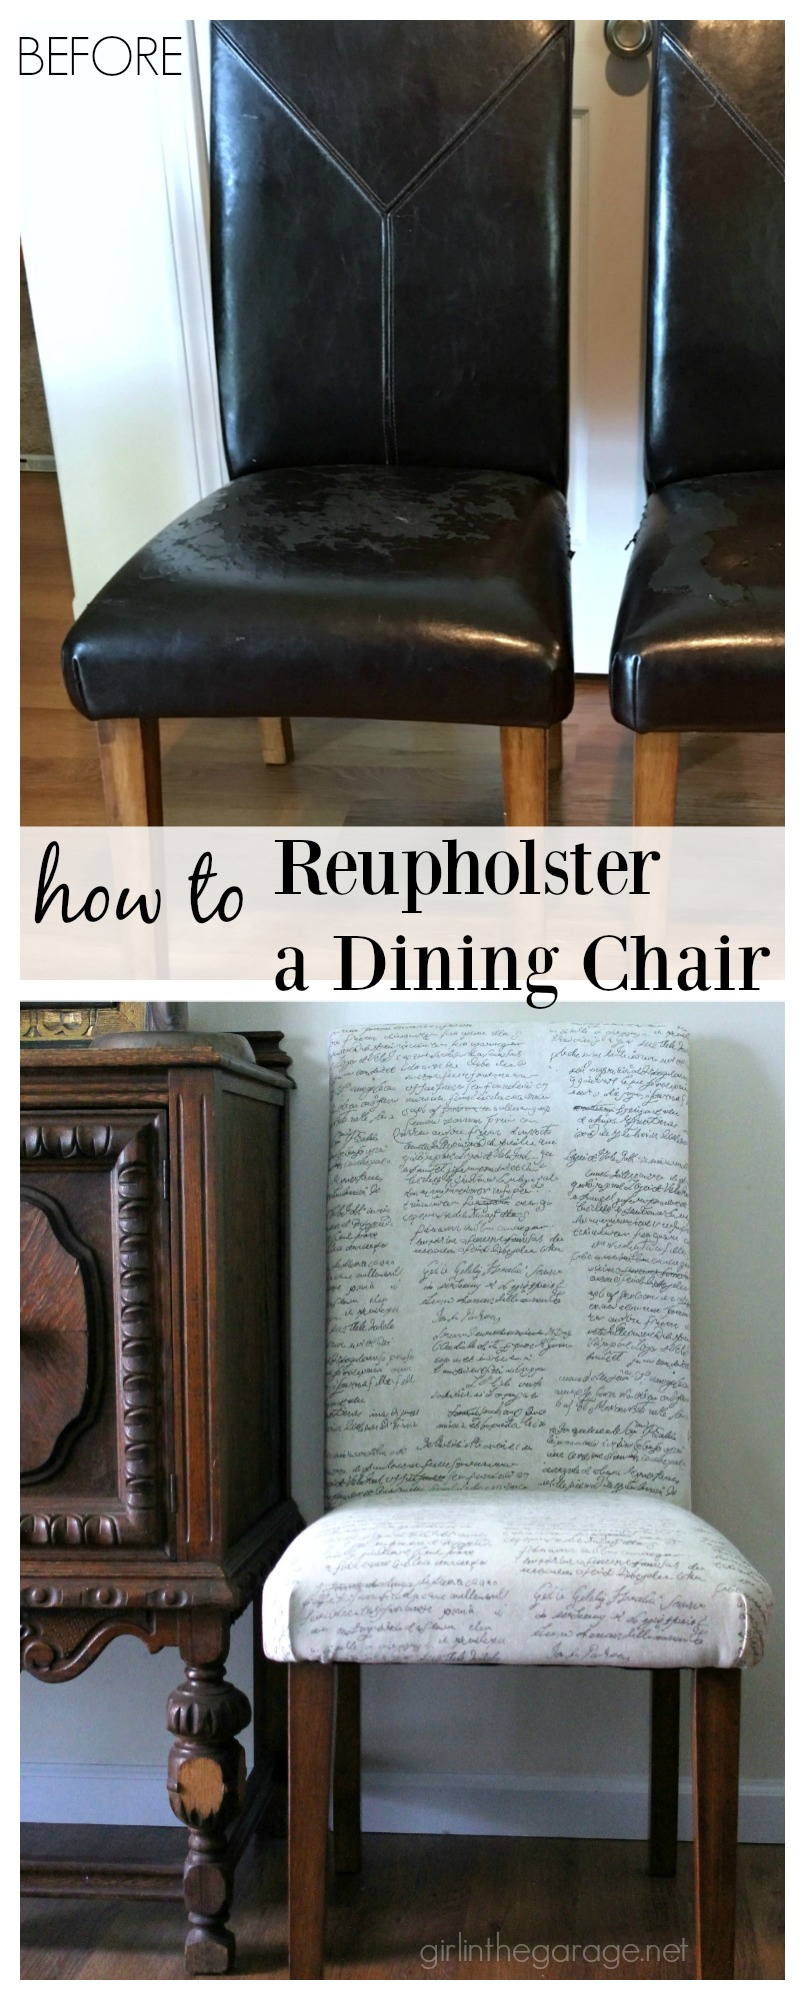 Do It Yourself Divas Diy Kitchen Table Makeover: How To Reupholster A Dining Chair + Straying From Your